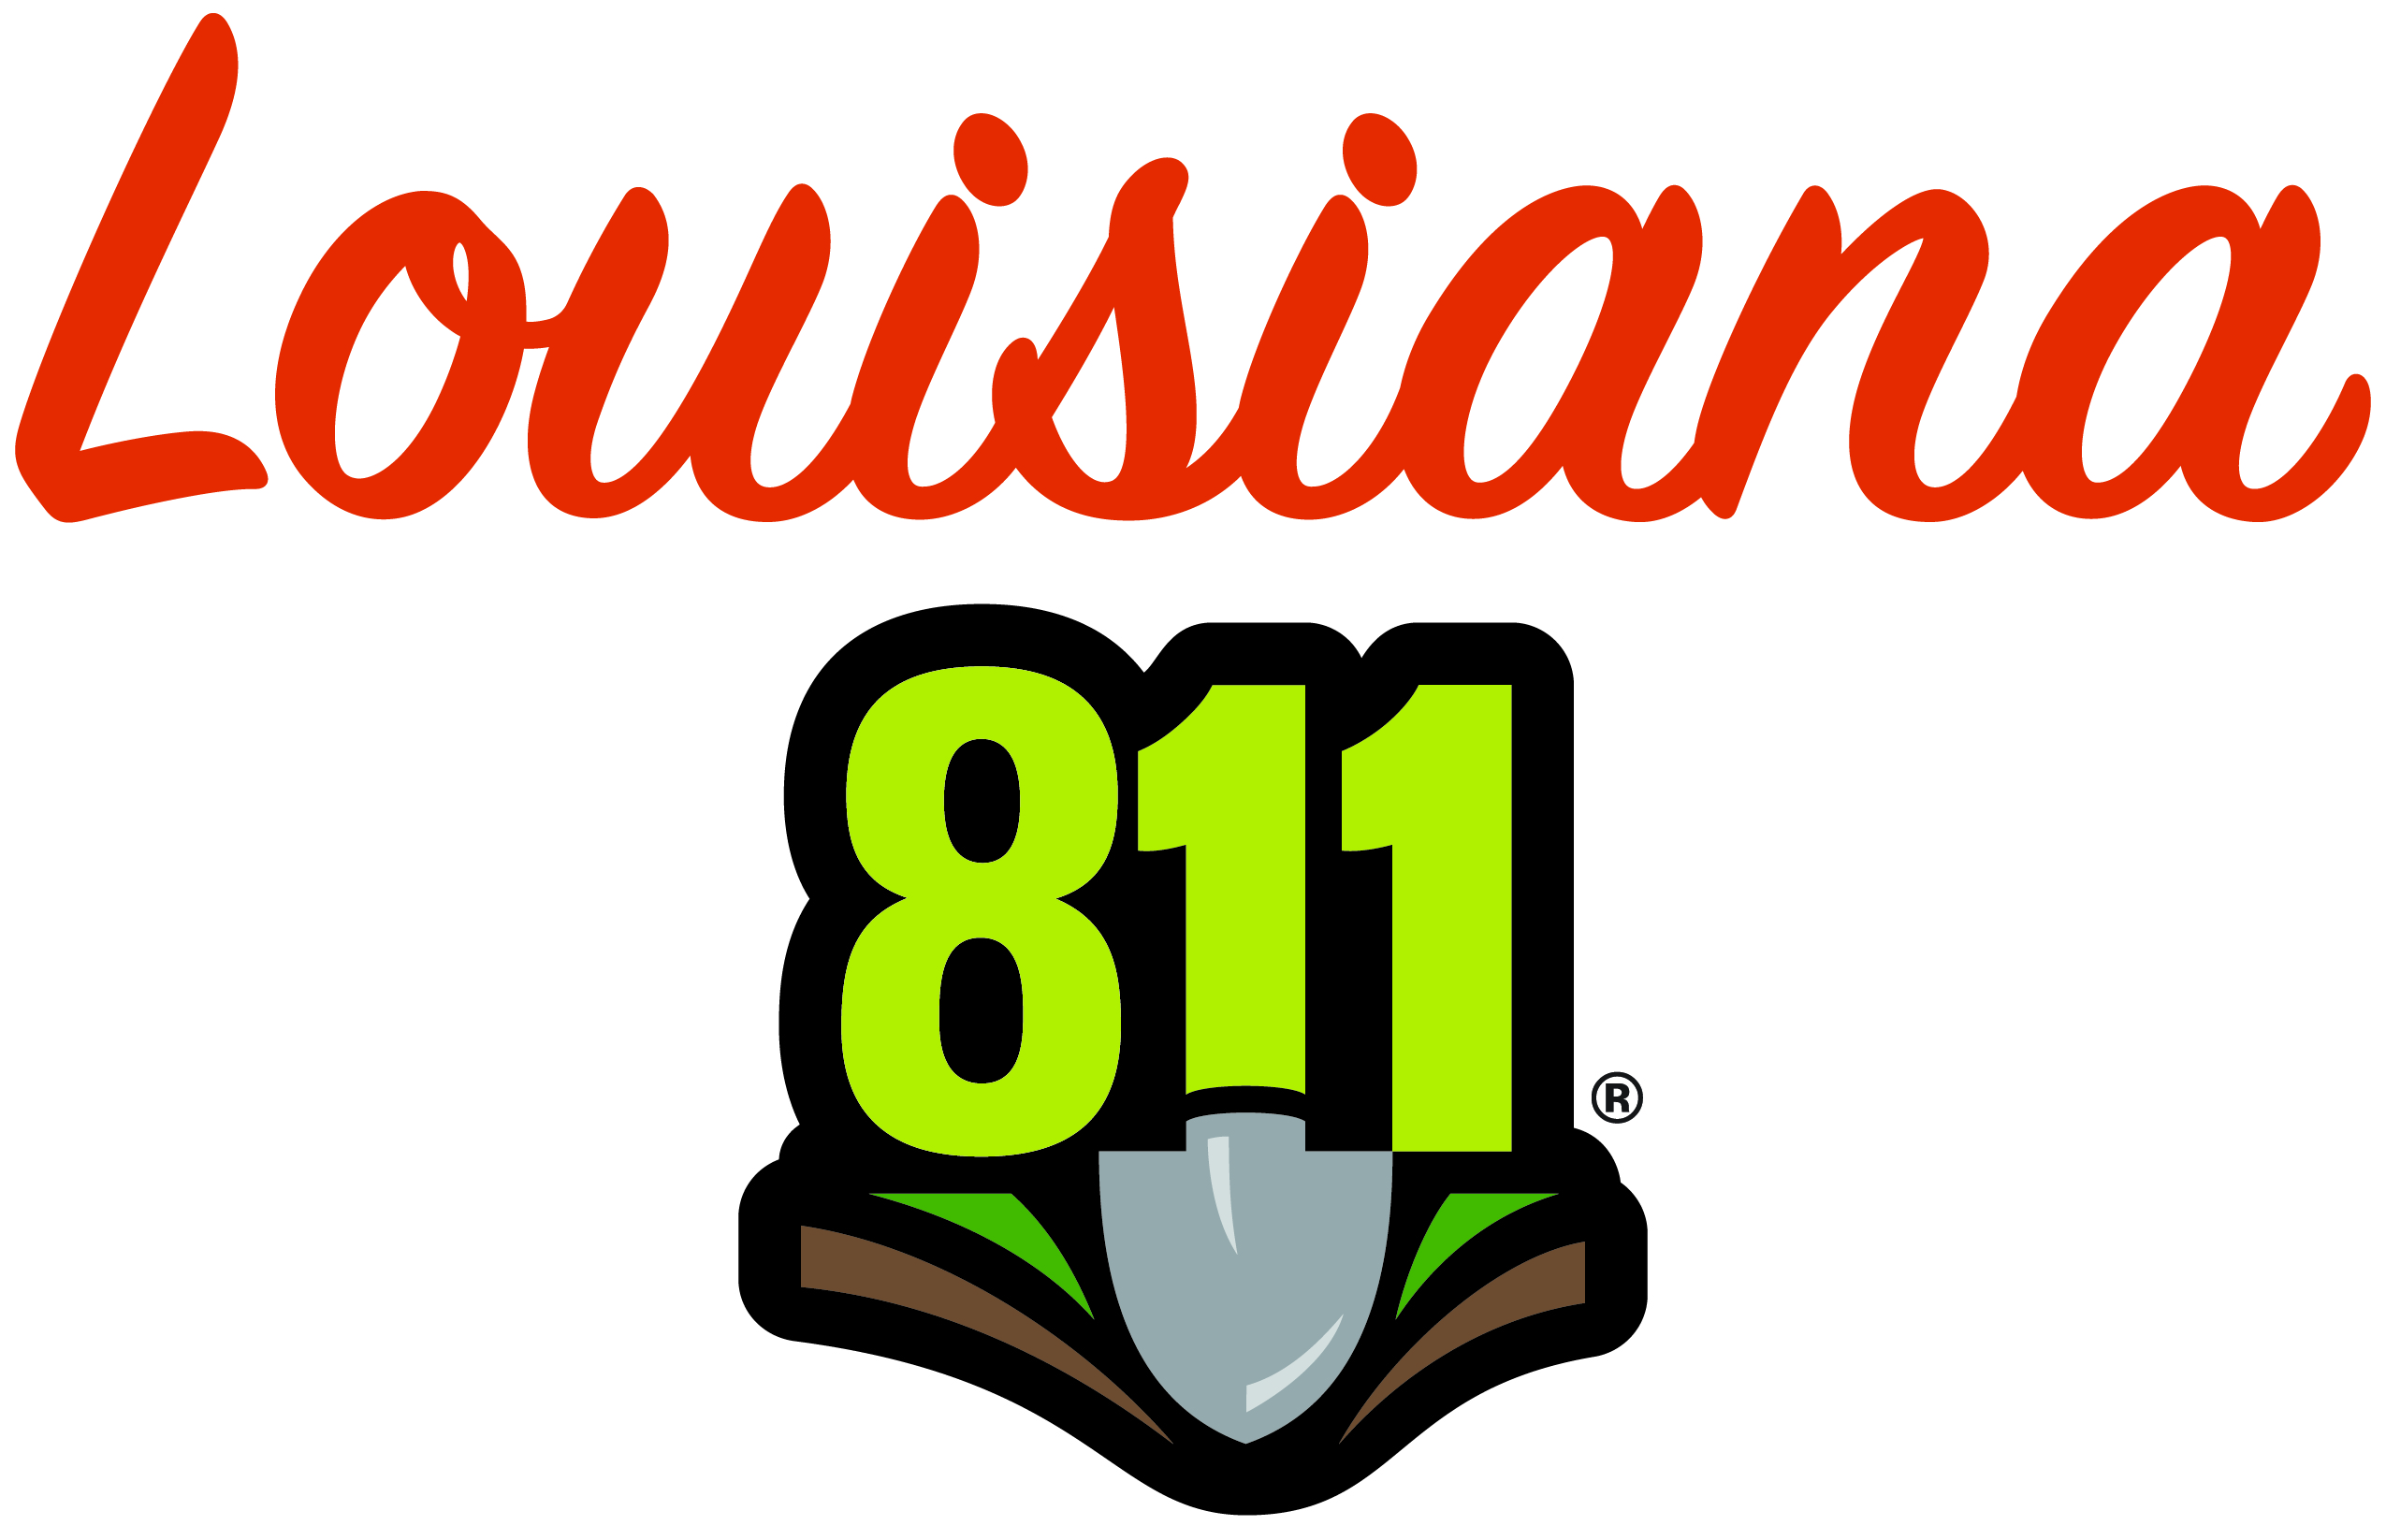 Louisiana 811 Logo